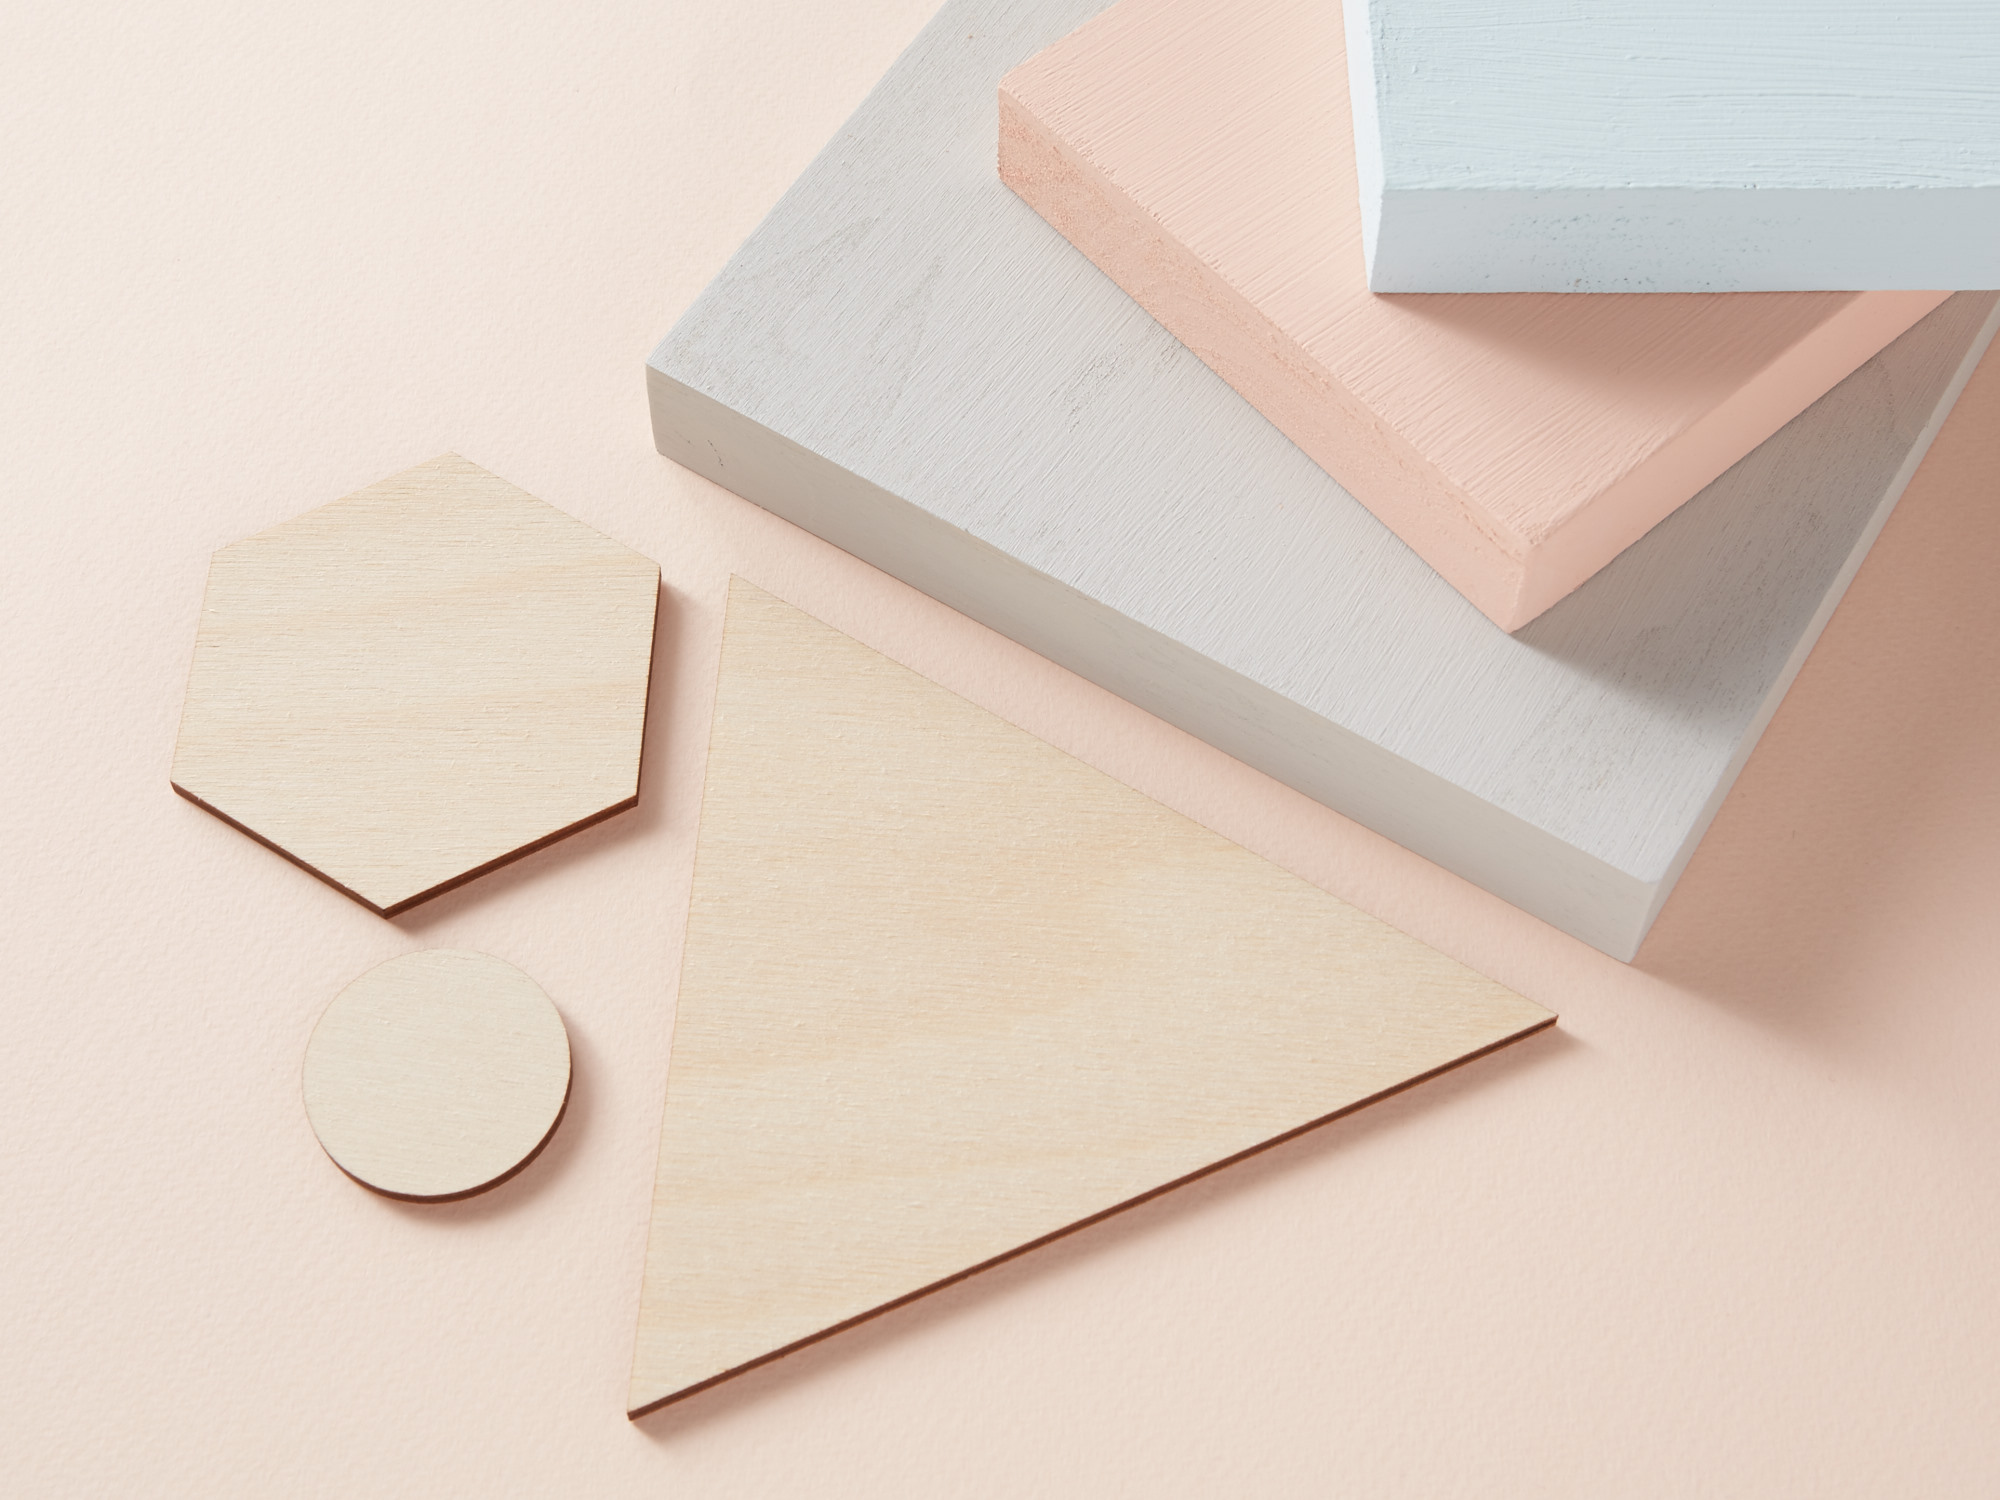 Wooden shapes & blocks - can be painted